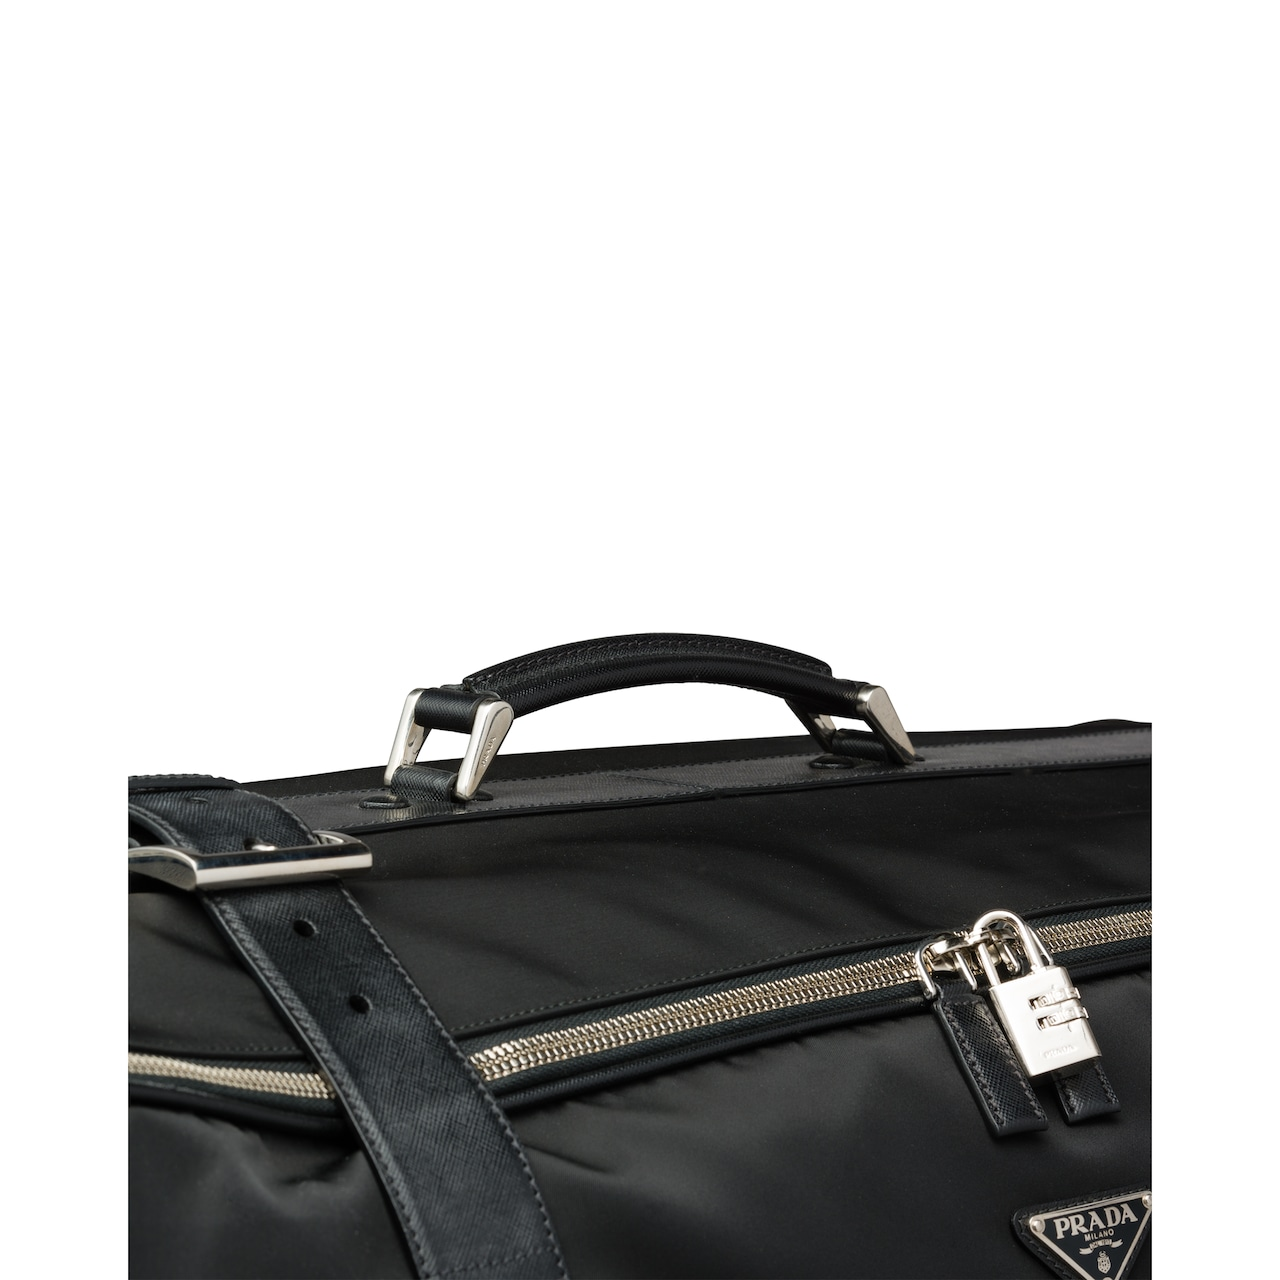 Prada Nylon Semi-Rigid Suitcase 6